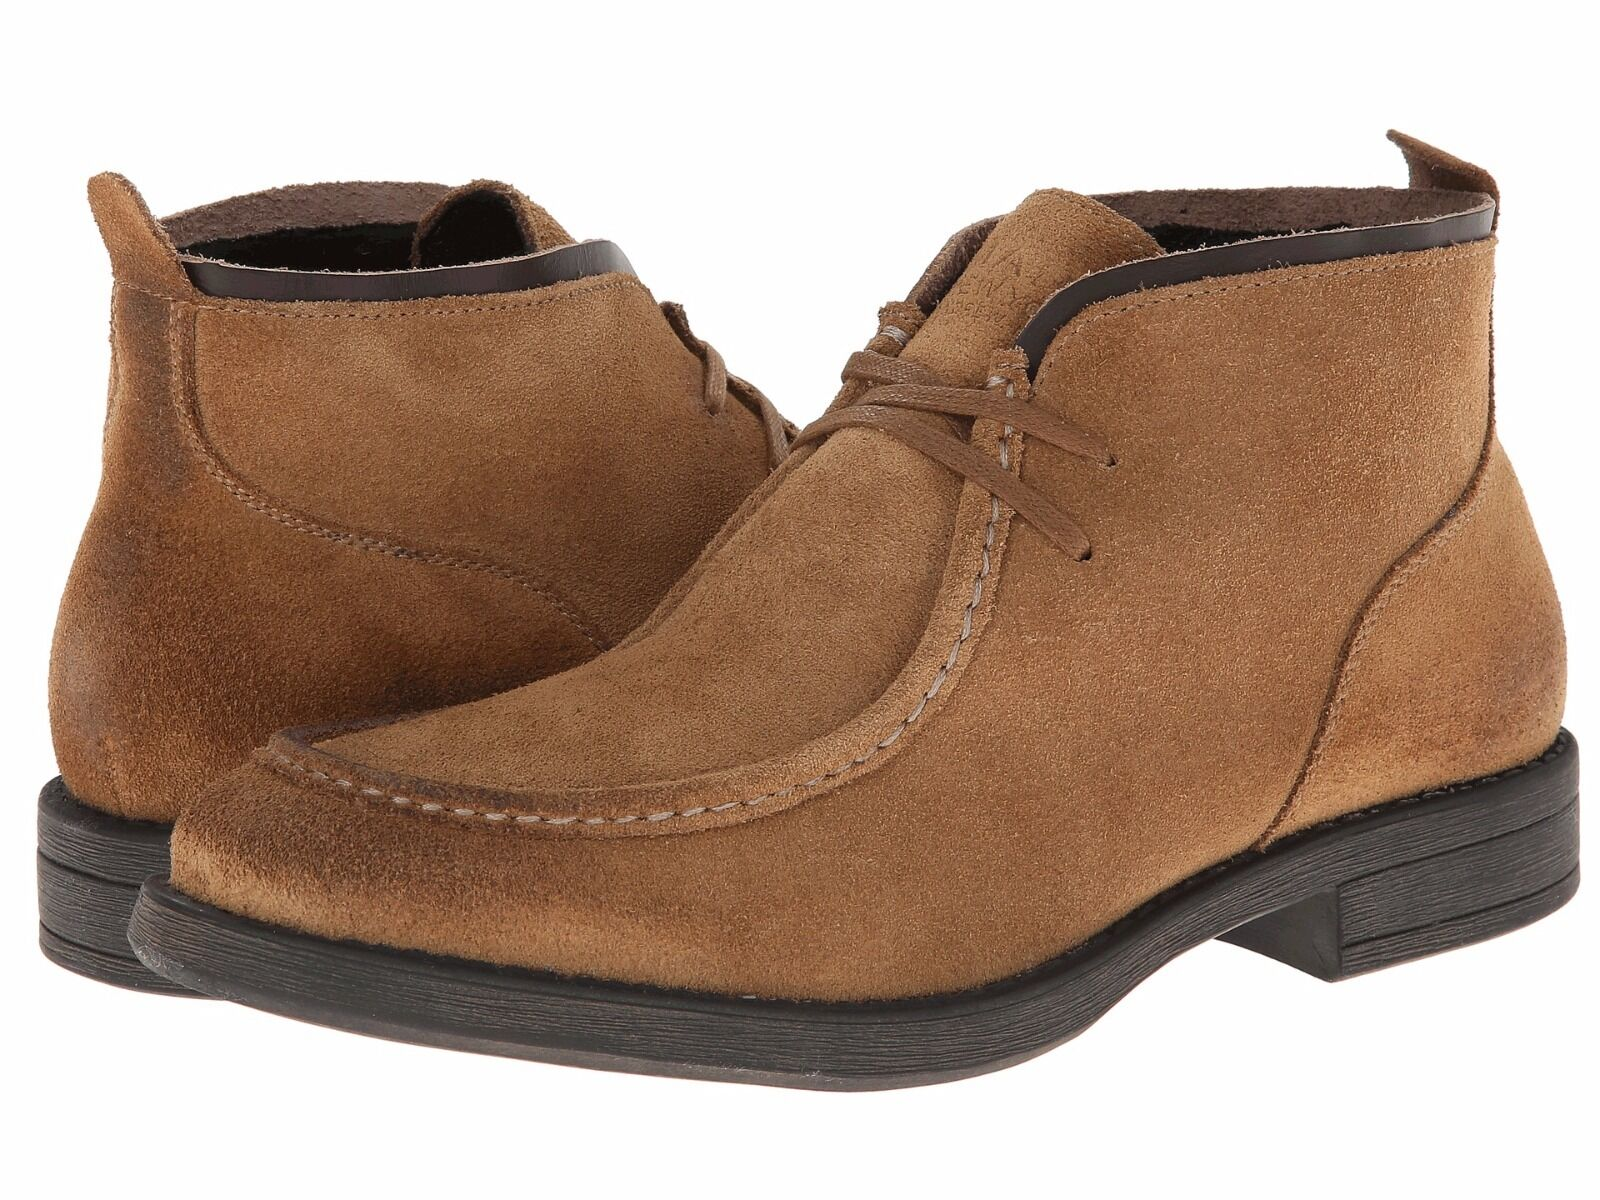 Men's Marc New York by Andrew Marc Howard Brown Suede SZ 10.5 MSRP 150